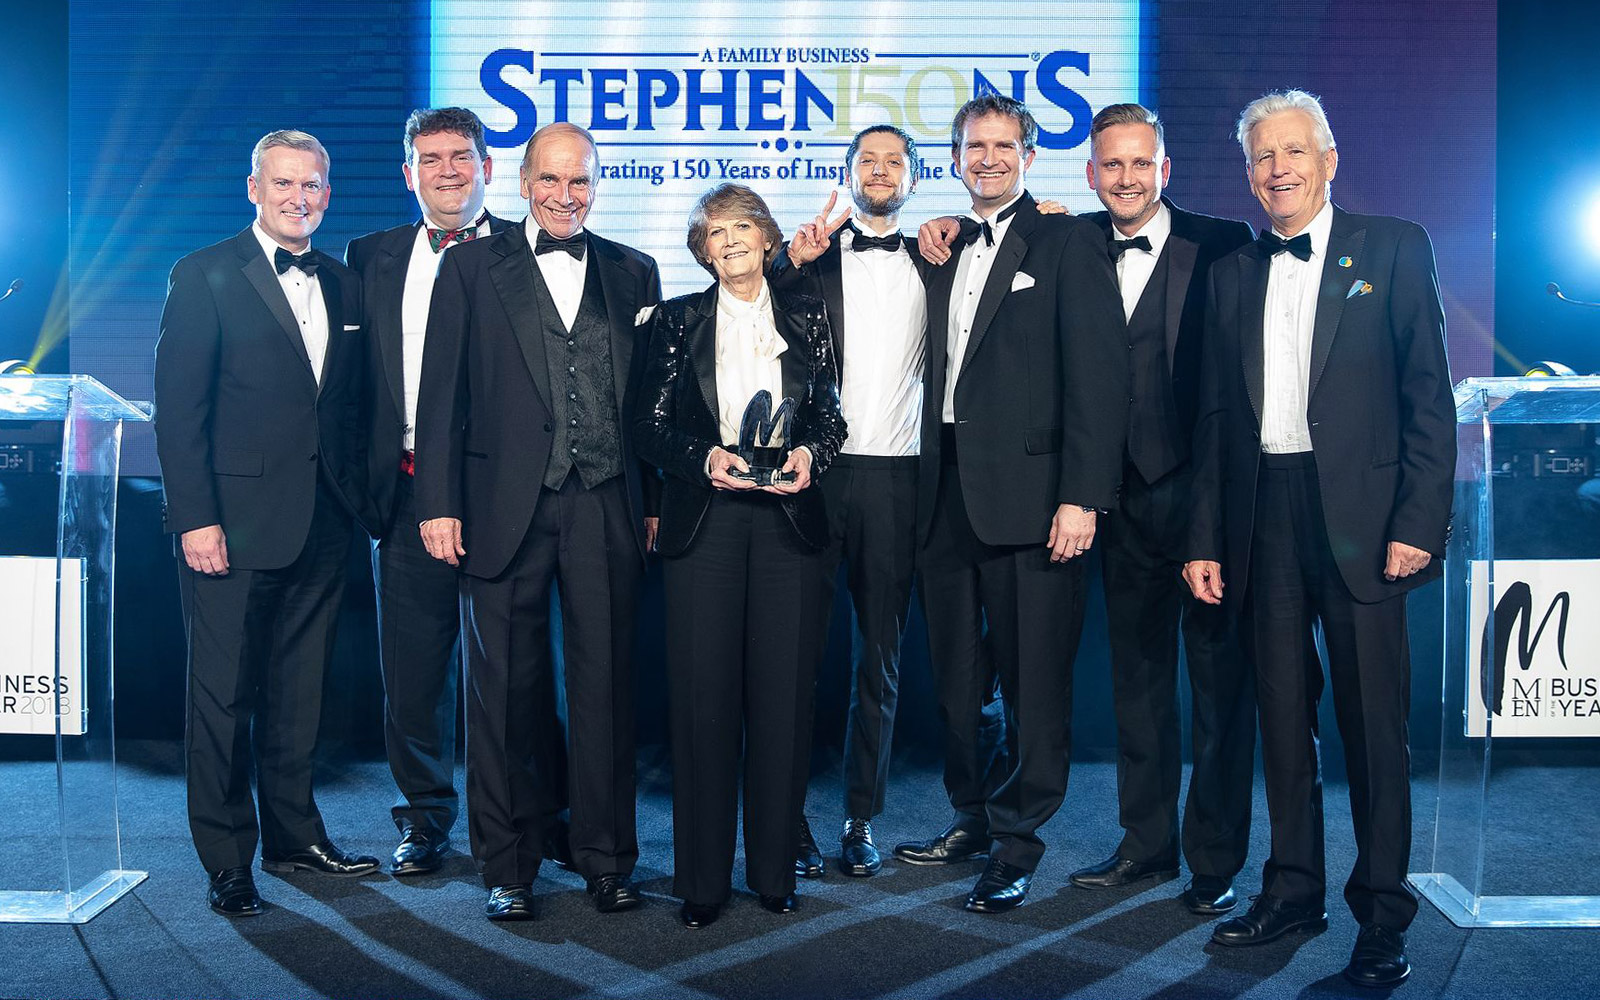 Stephensons were proud to be win the 2018 Manchester Evening News Business of the Year Award